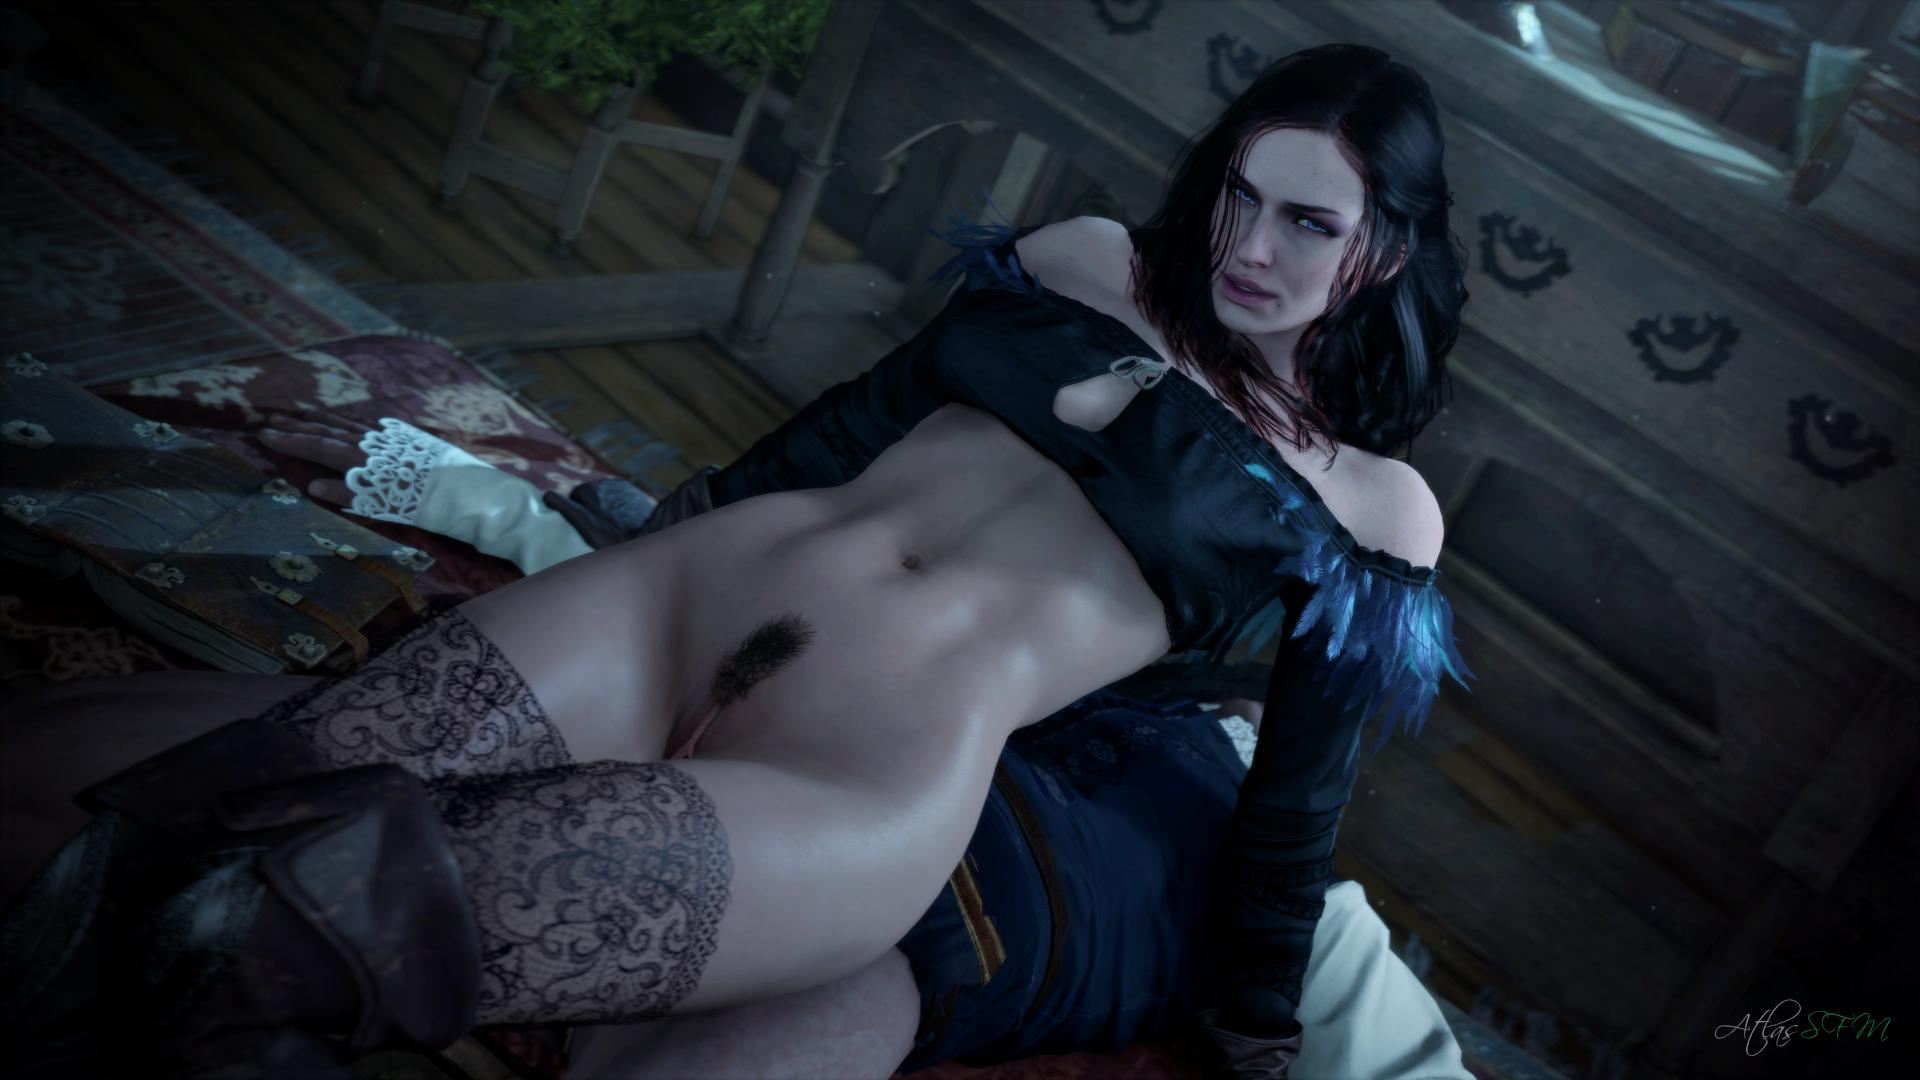 yennefer of vengerberg, yennefer, the witcher 3, the witcher